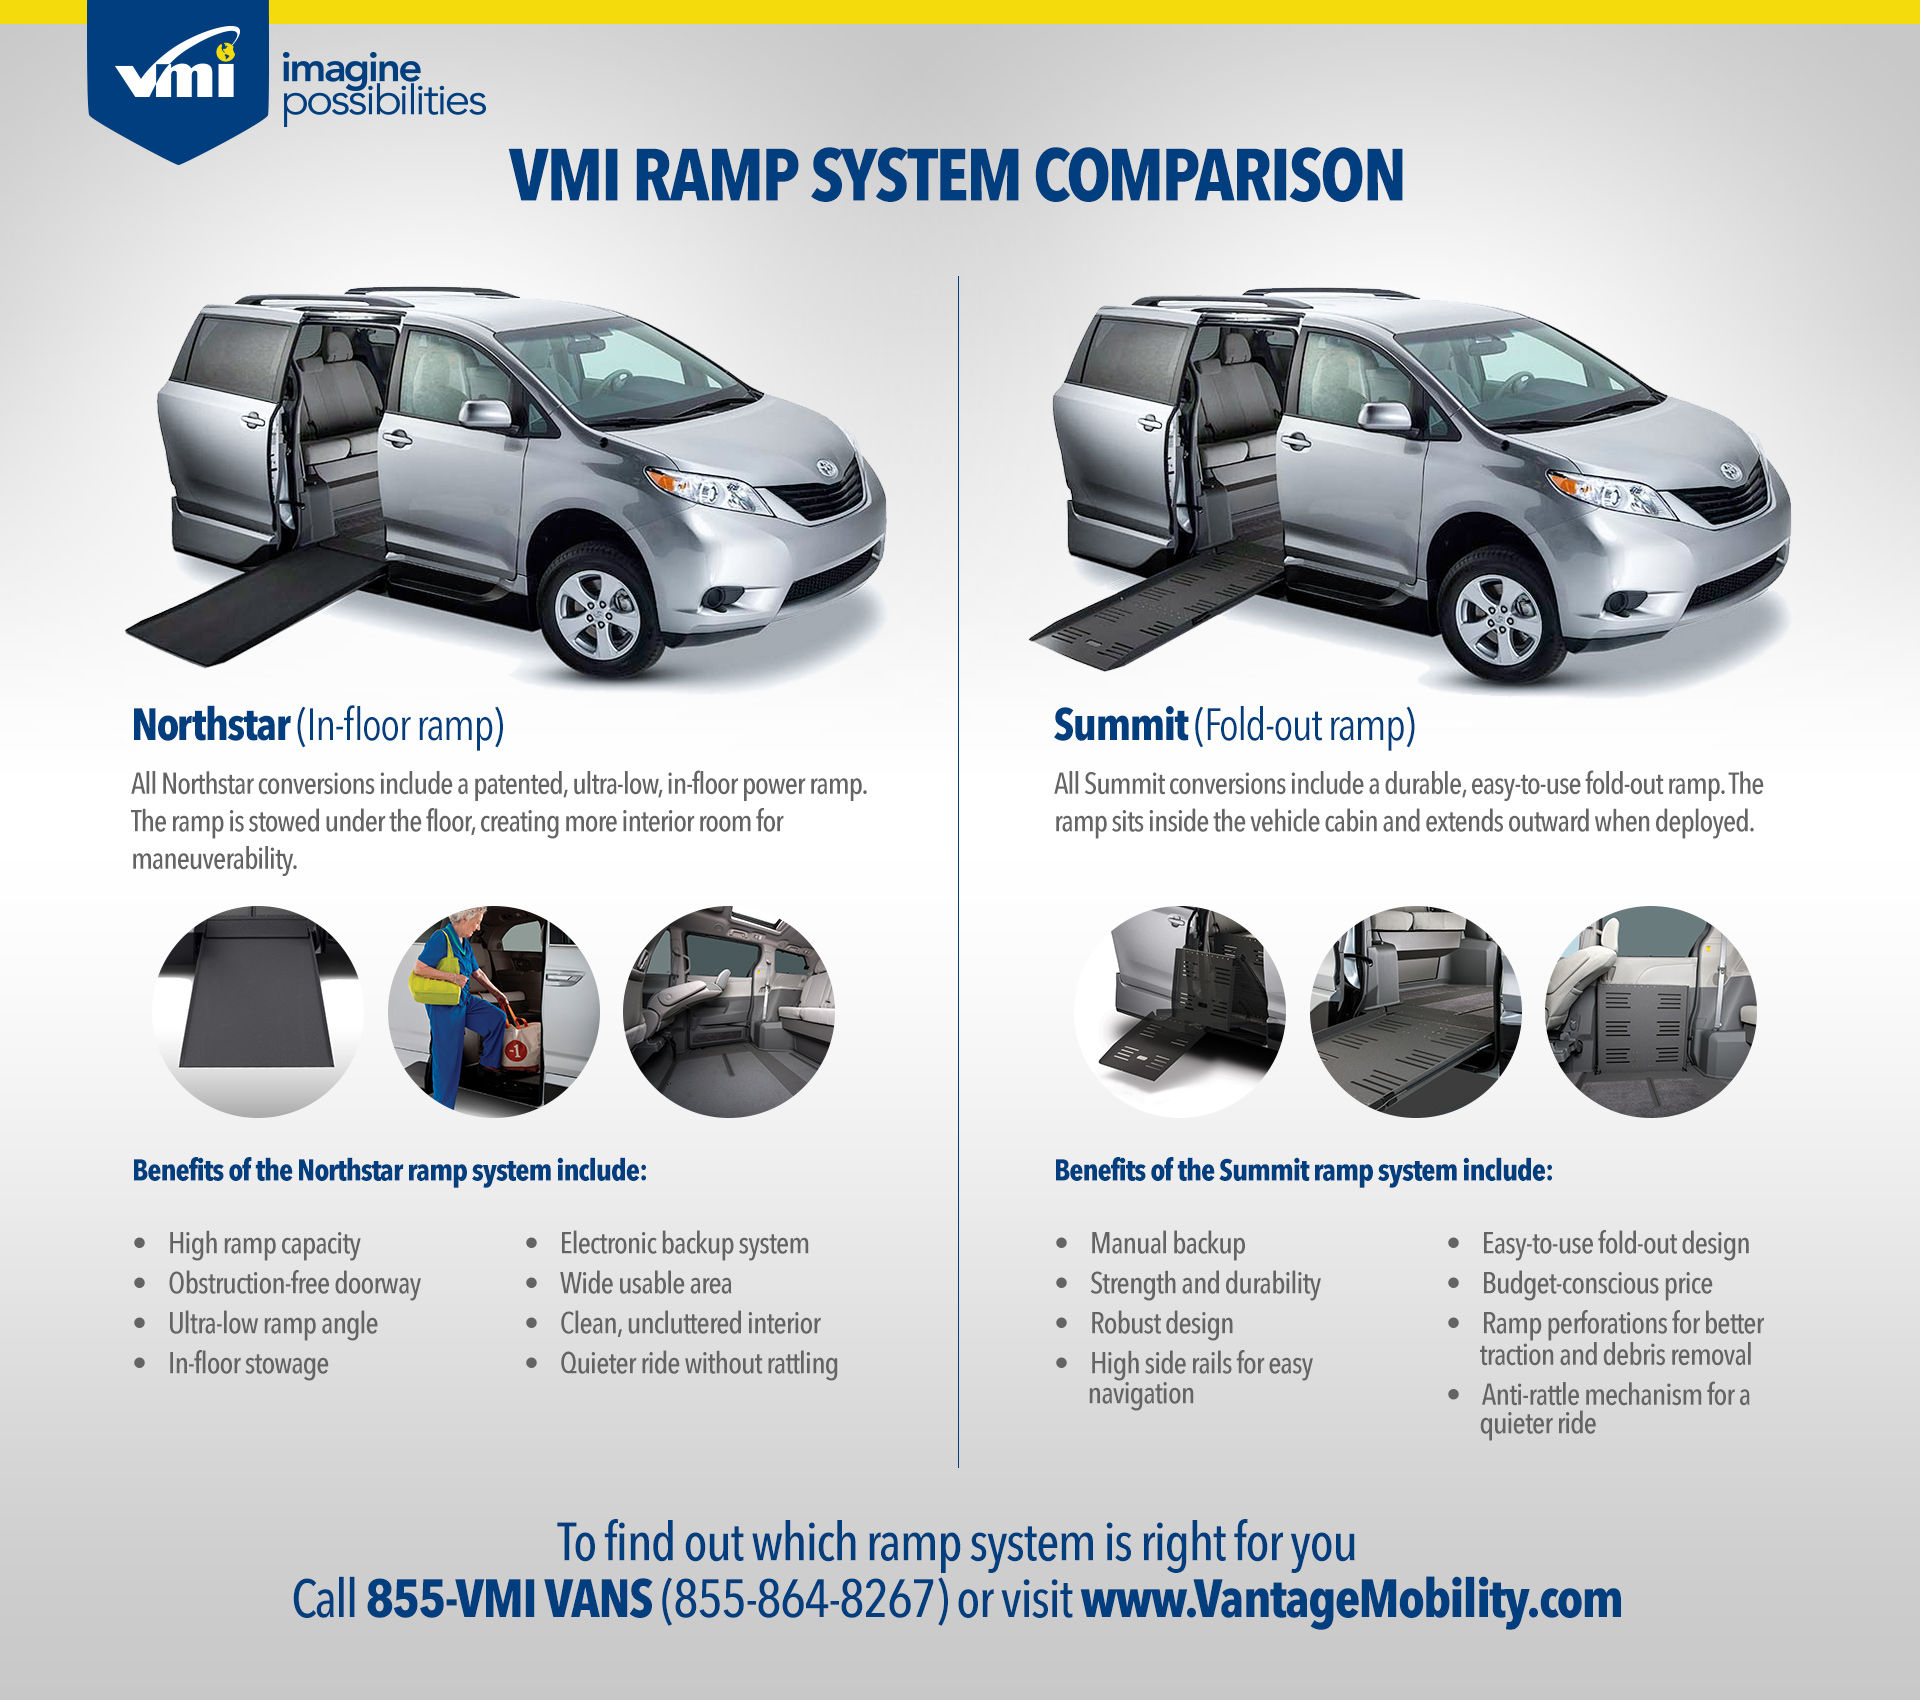 VMI Ramp System Comparison Infographic